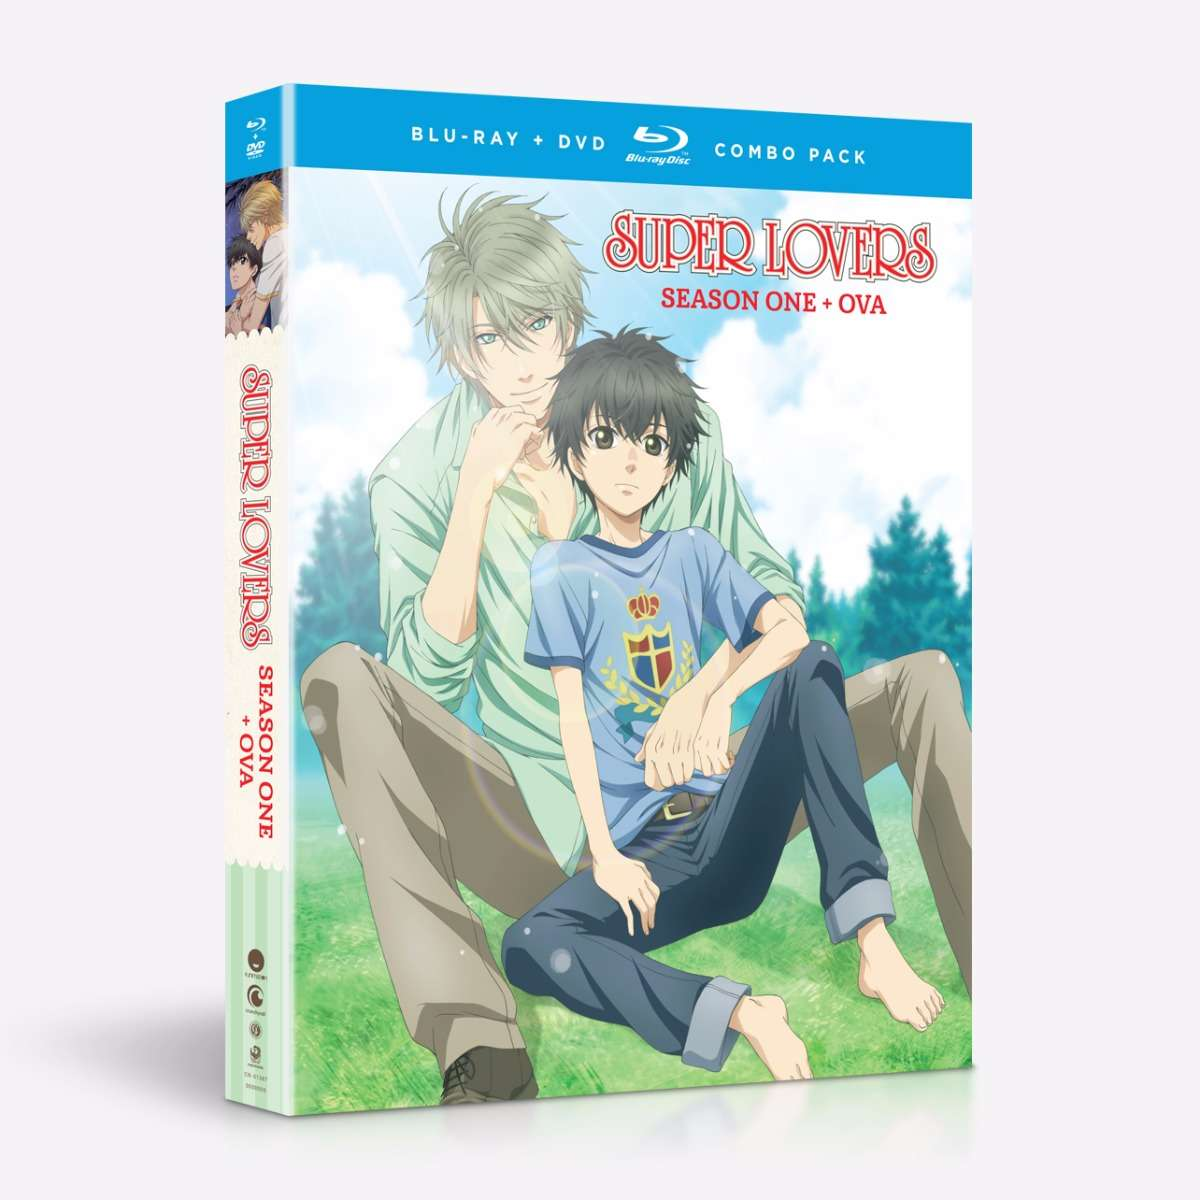 Super Lovers Season 1 Blu-ray/DVD 704400013676